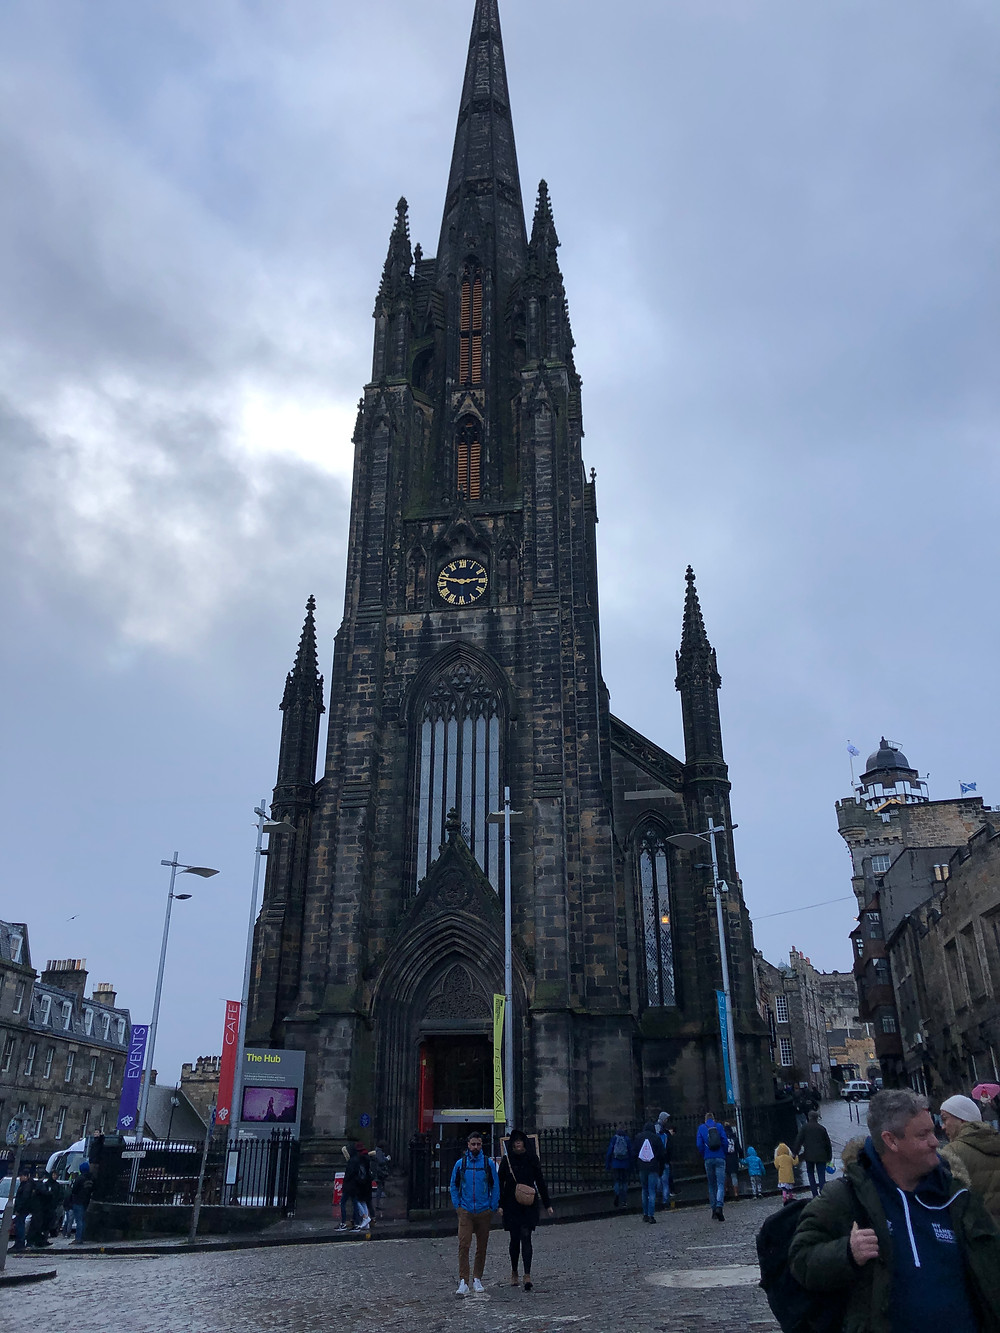 St. Giles' Cathedral in Edinburgh